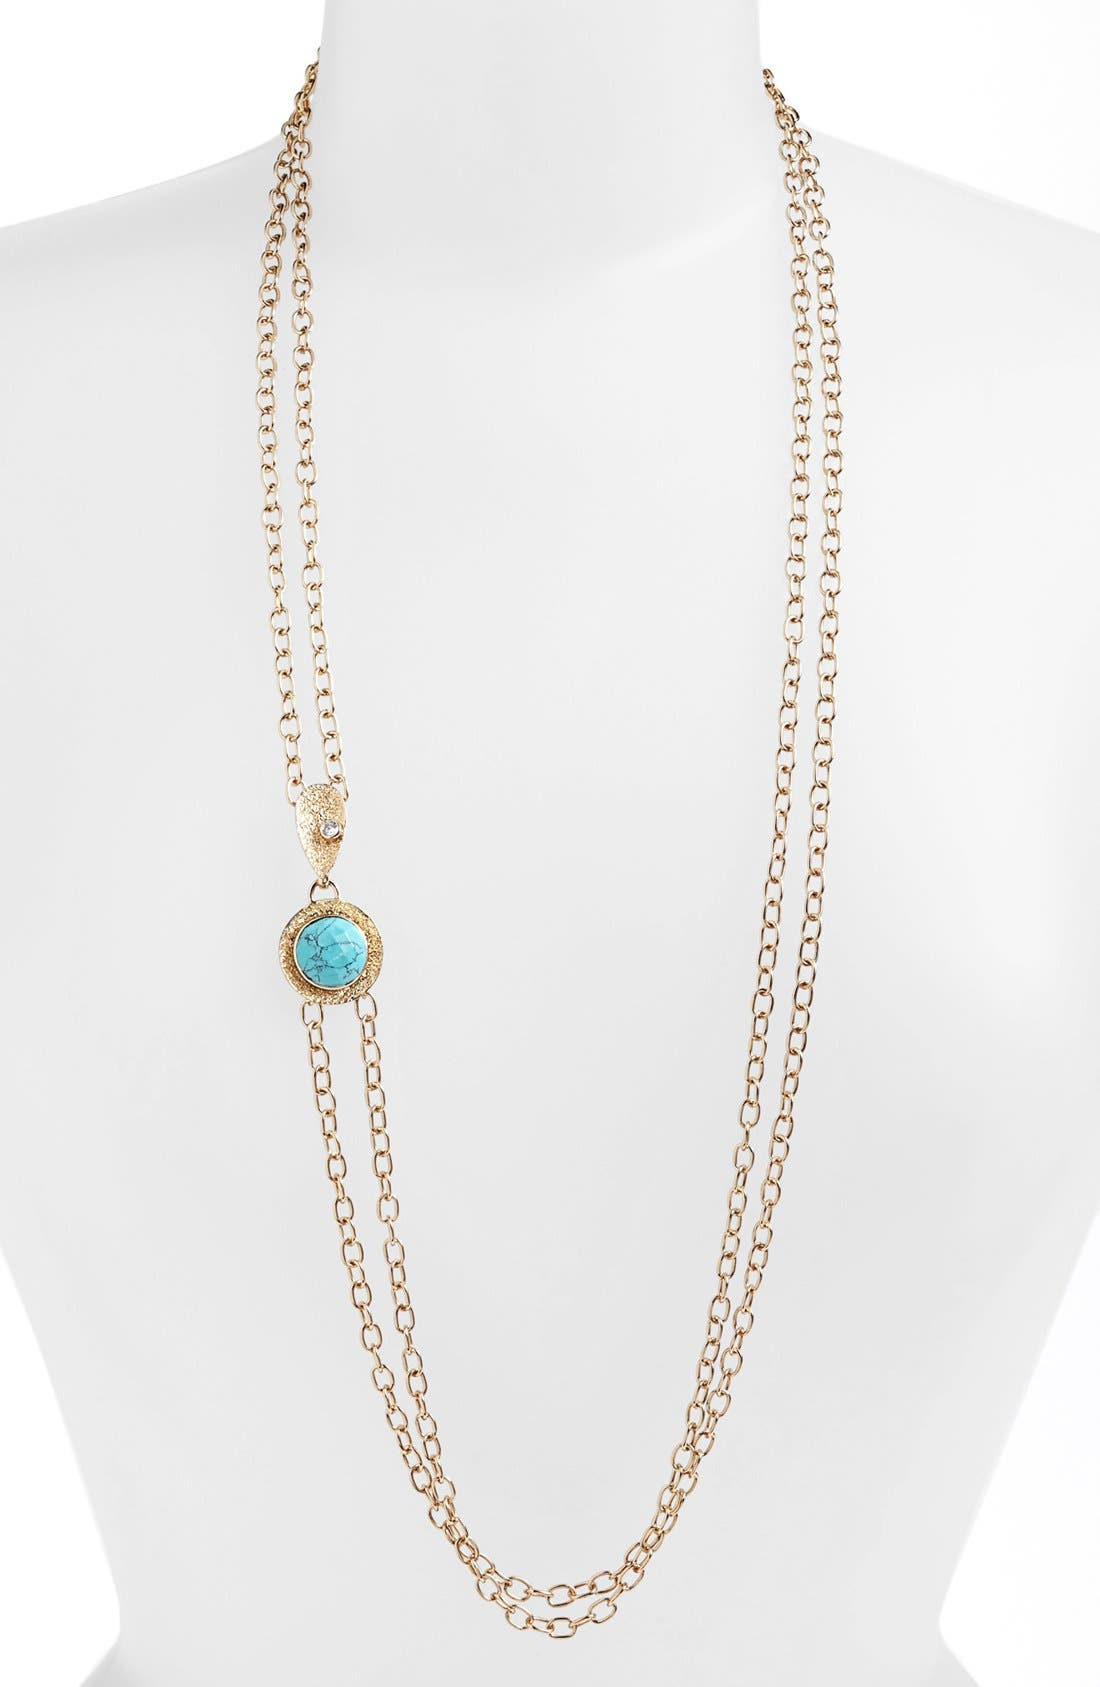 Main Image - Melinda Maria 'Sandra' Long Multistrand Necklace (Nordstrom Exclusive)